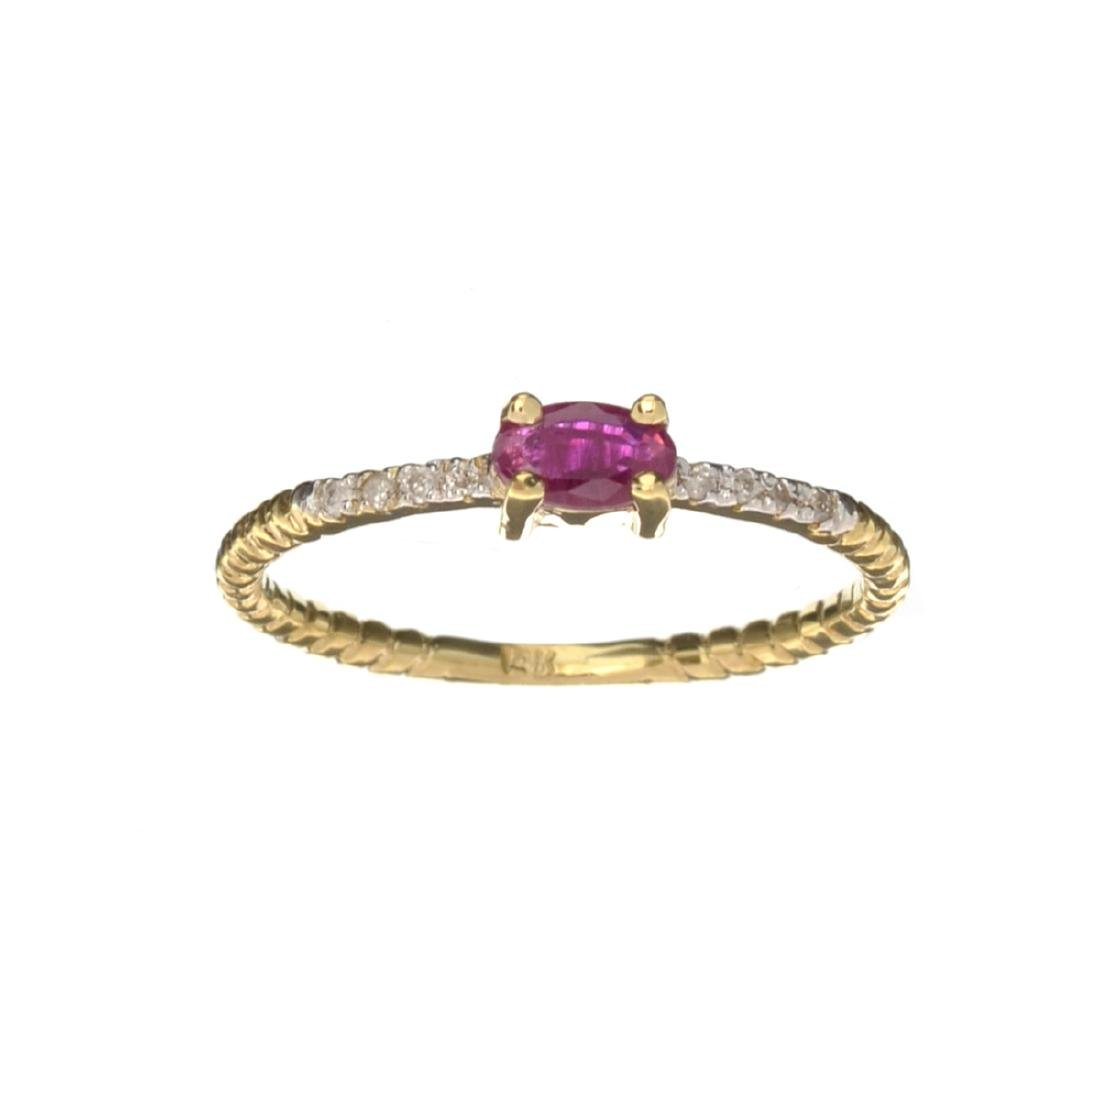 APP: 0.6k Fine Jewelry 14 KT Gold, 0.26CT Ruby And